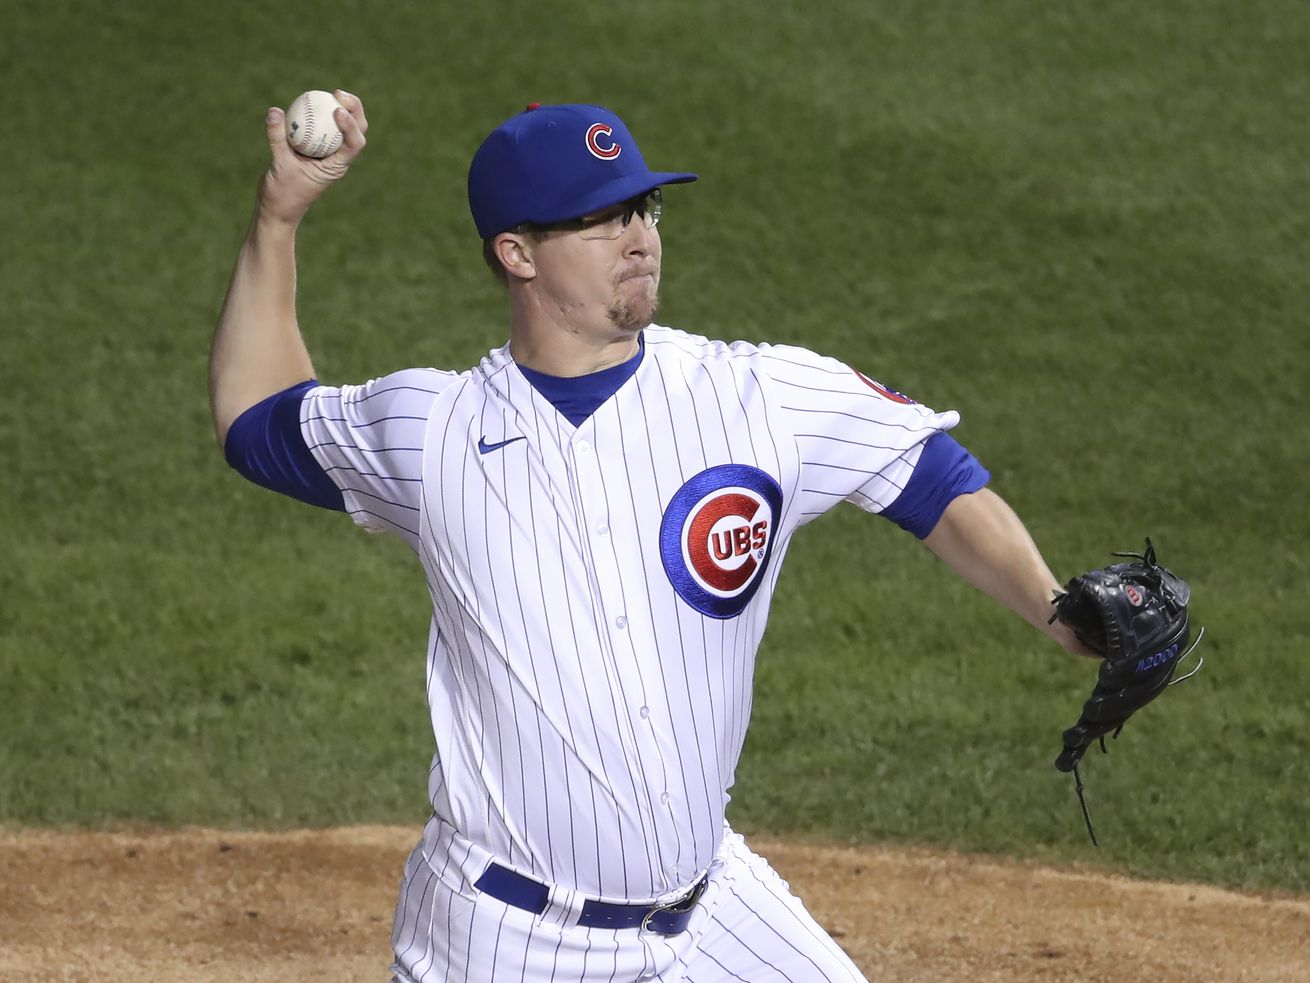 Cubs' winning streak snapped as Alec Mills loses first start after no-hitter